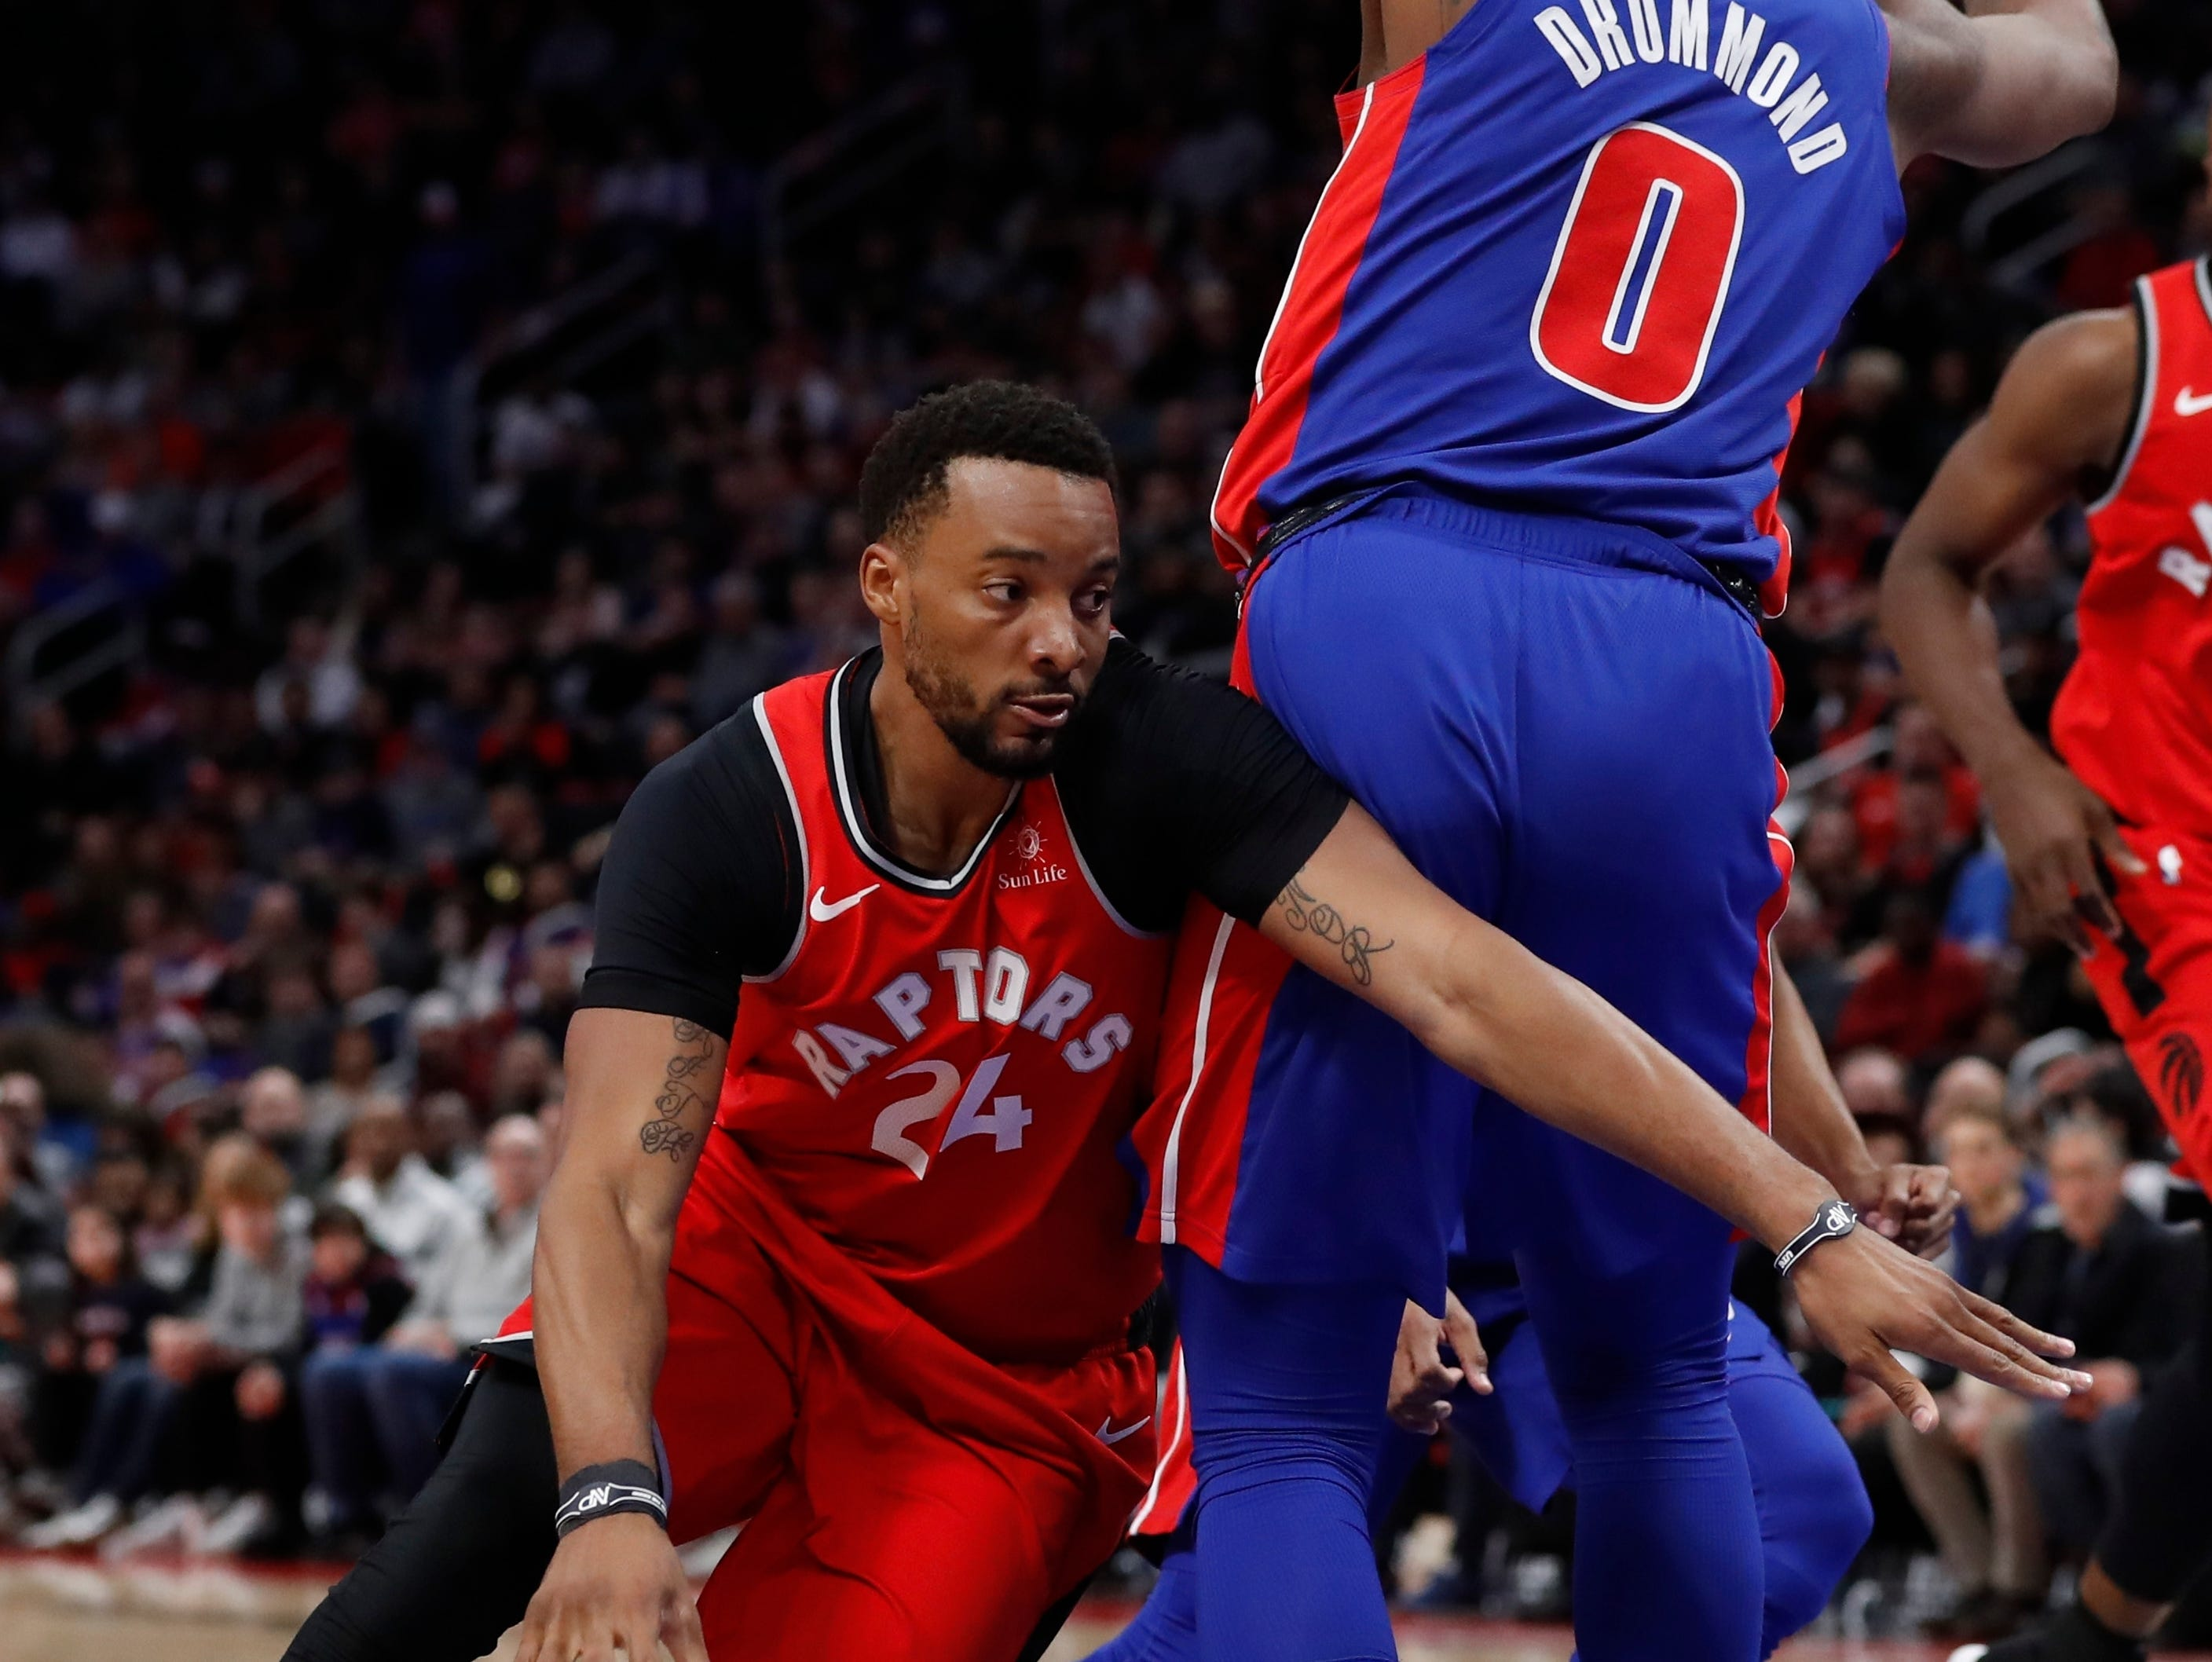 Toronto Raptors forward Norman Powell drives around Detroit Pistons center Andre Drummond (0) during the second half.